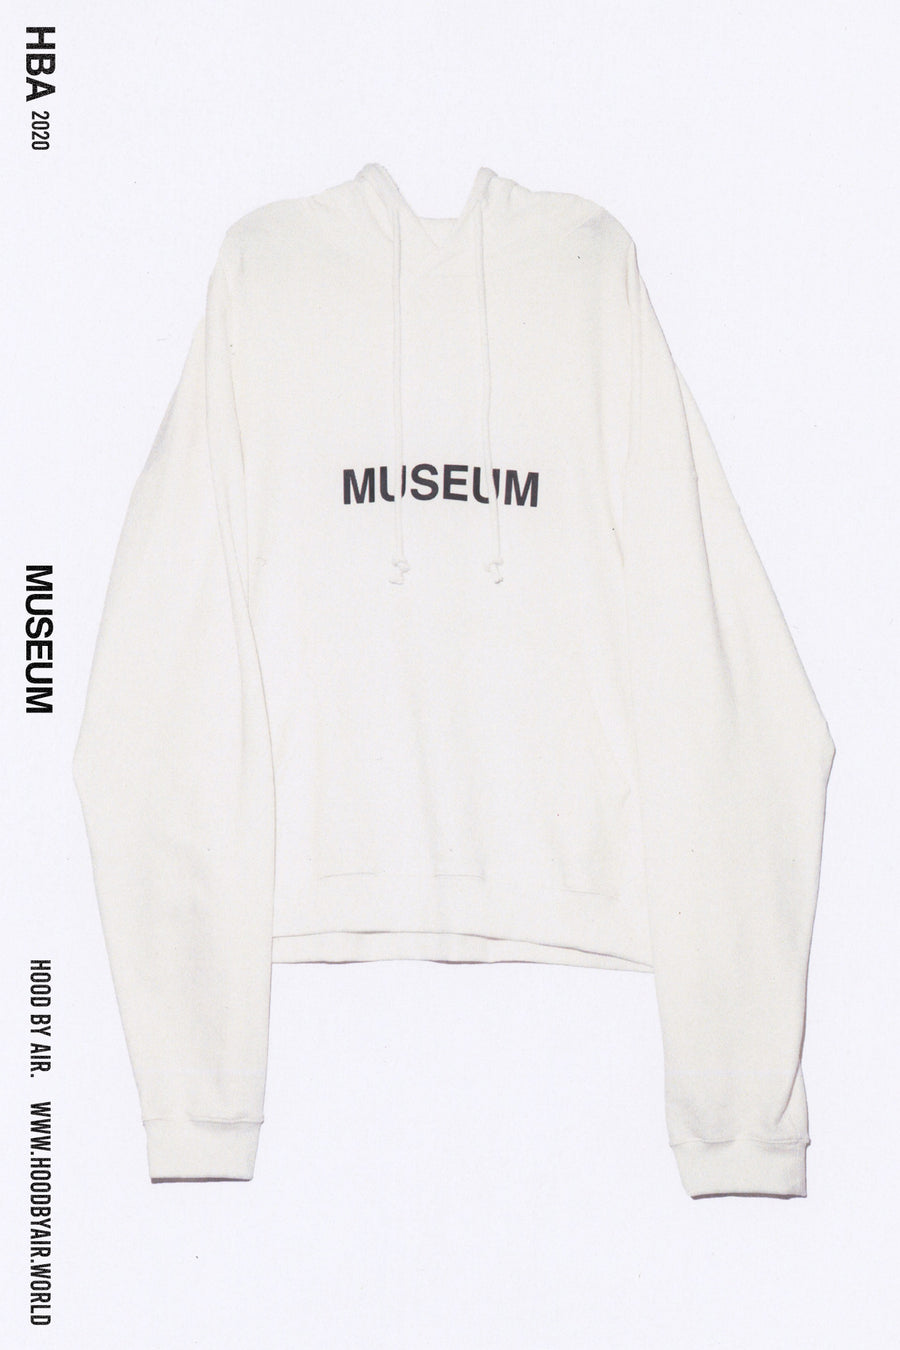 HBA-M-001-02 MUSEUM HOODED SWEATSHIRT WHITE